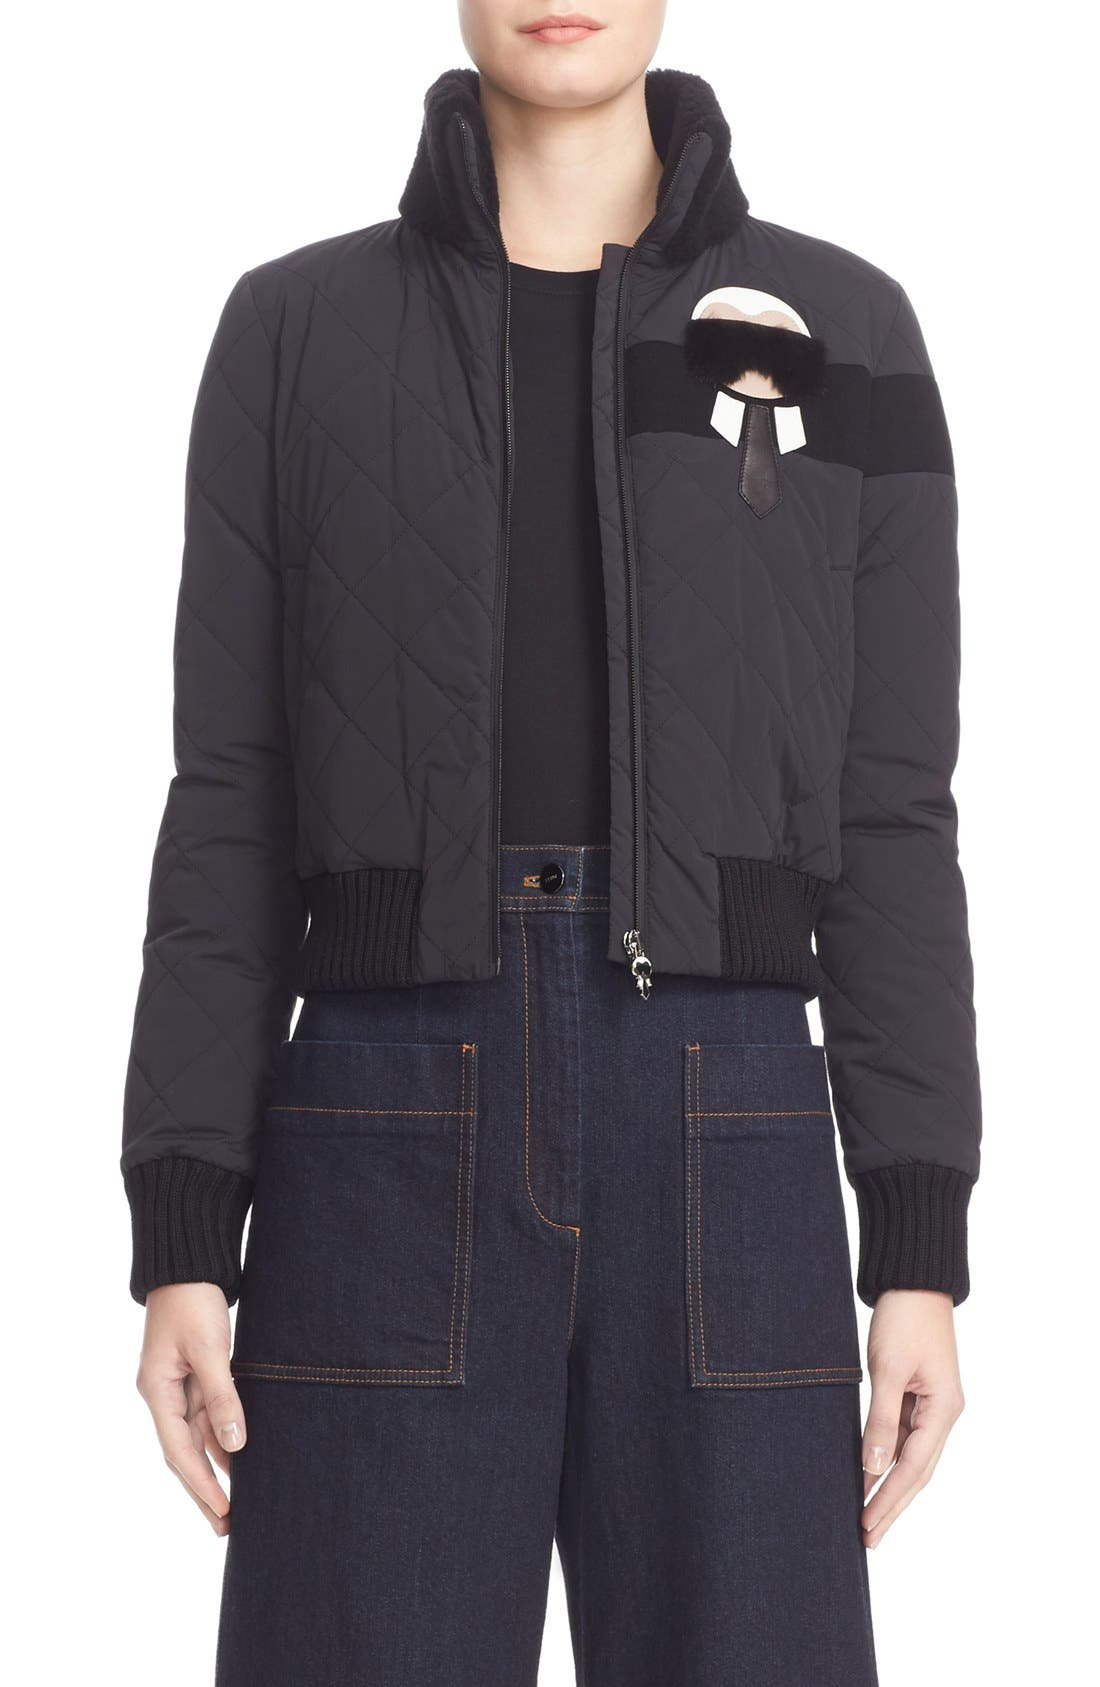 FENDI Karlito Puffer with Genuine Shearling & Fur Trim